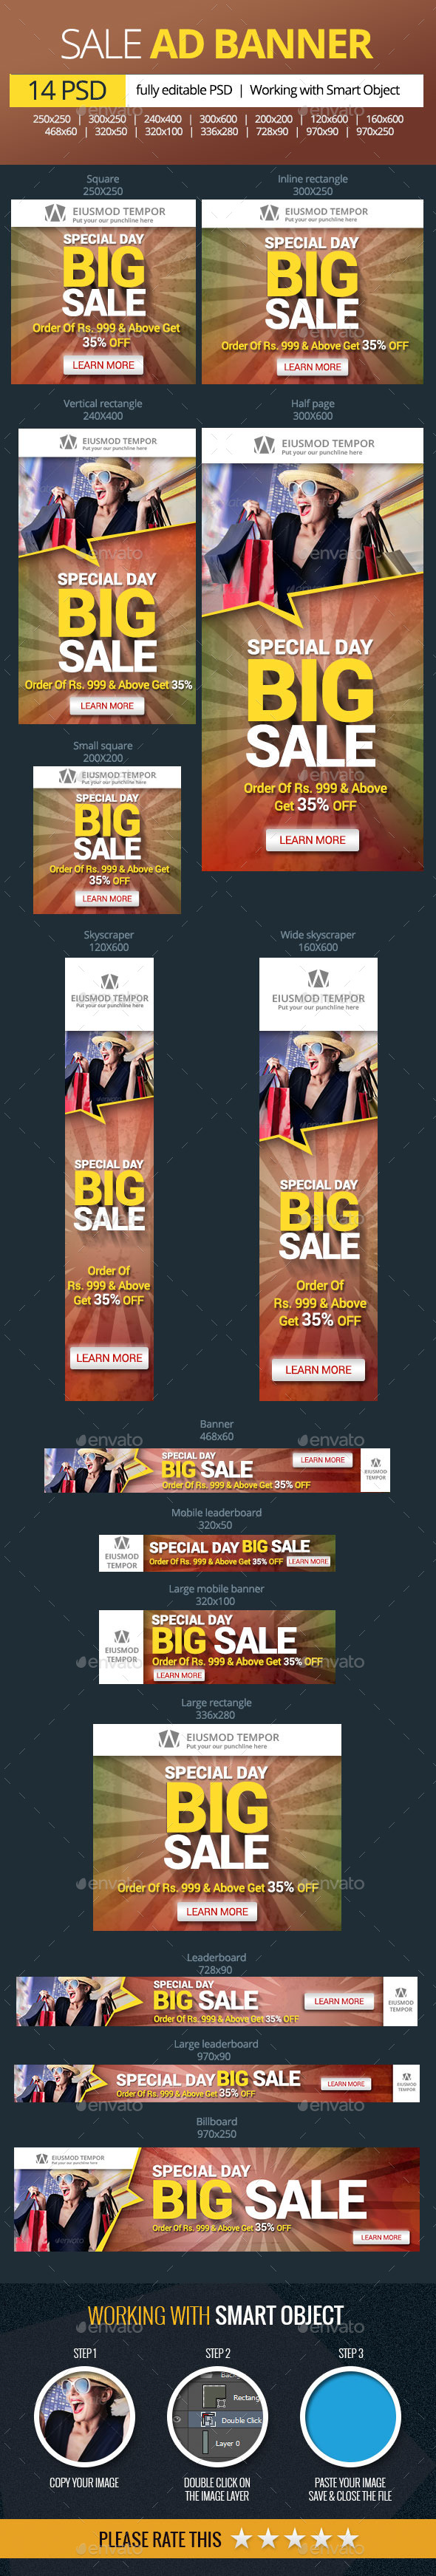 Multipurpose Sale Banner - Banners & Ads Web Elements